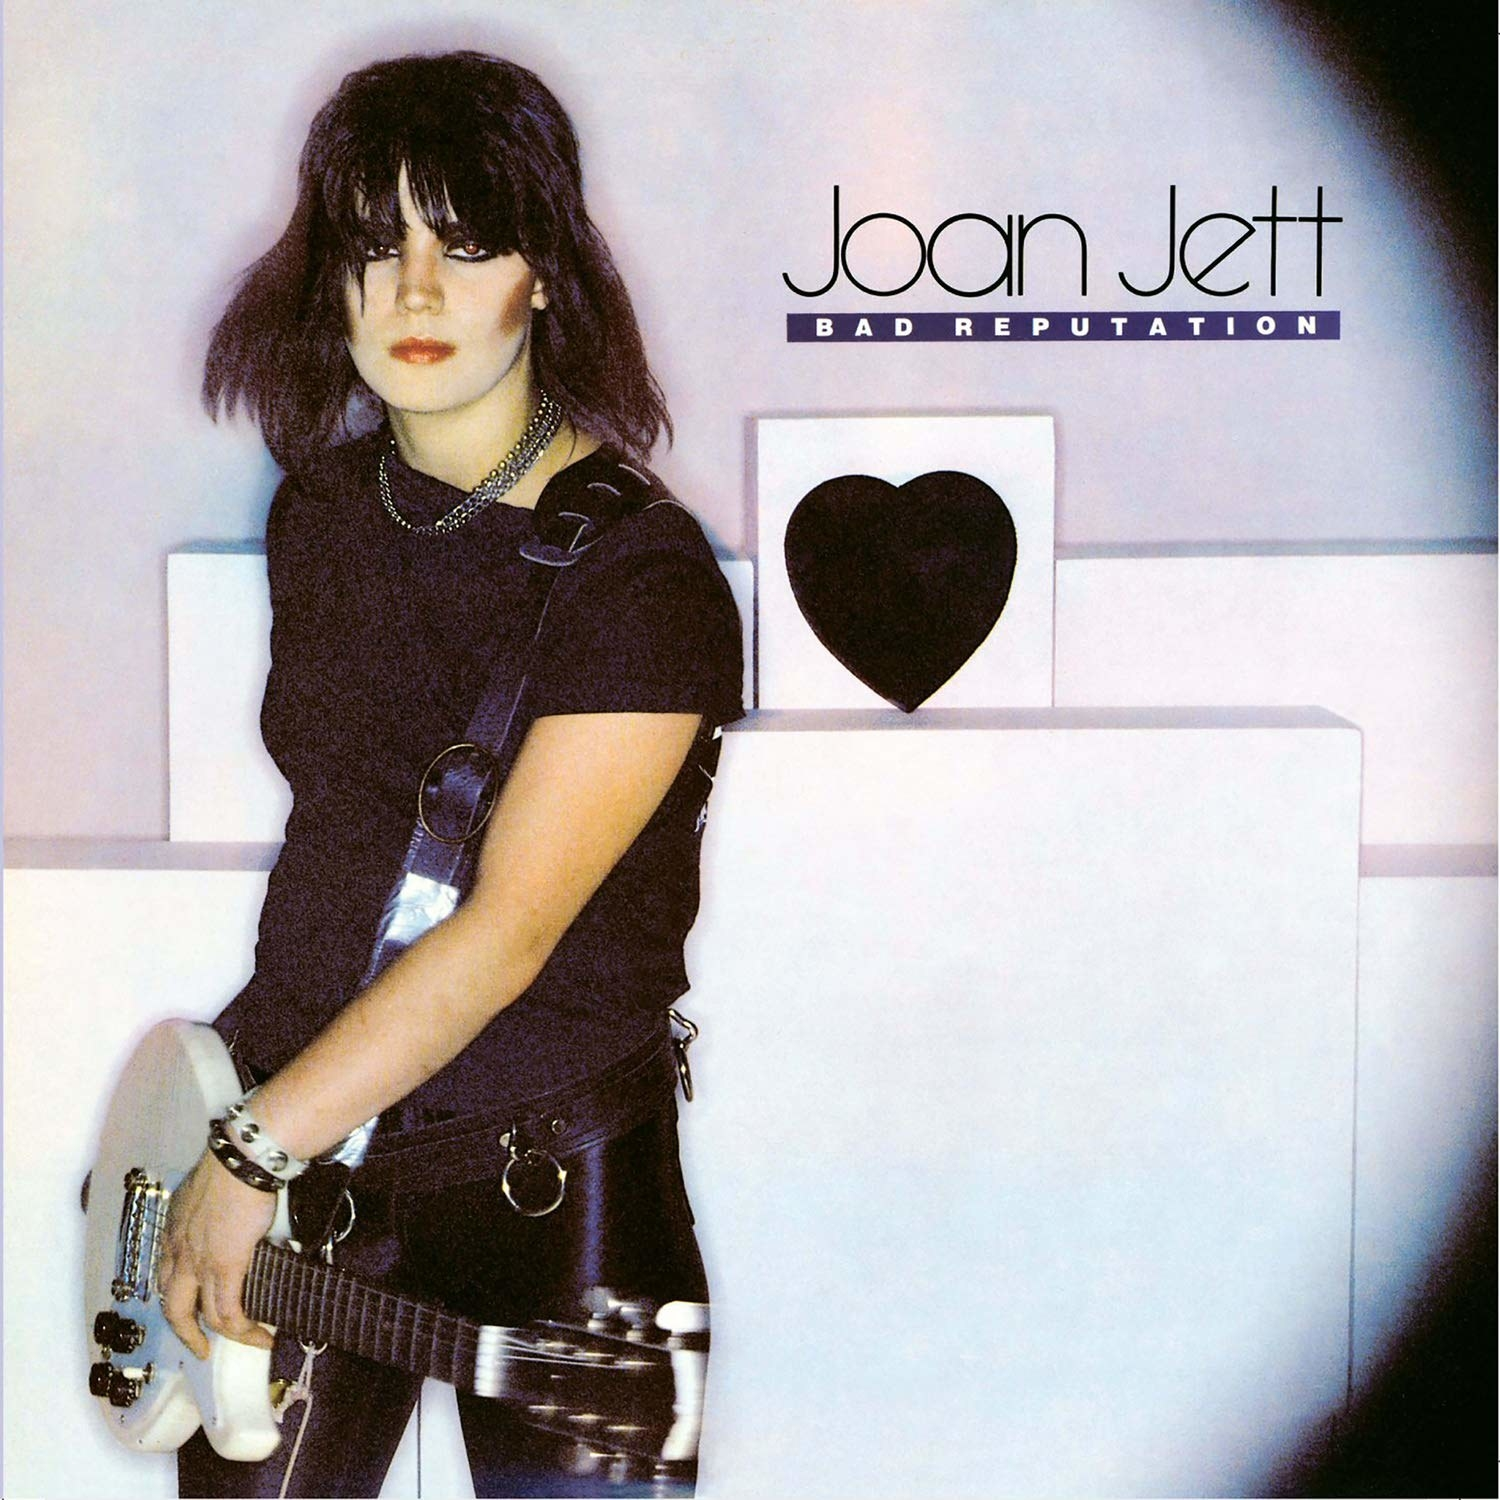 album cover of Bad Reputation showing Joan Jett standing with her guitar